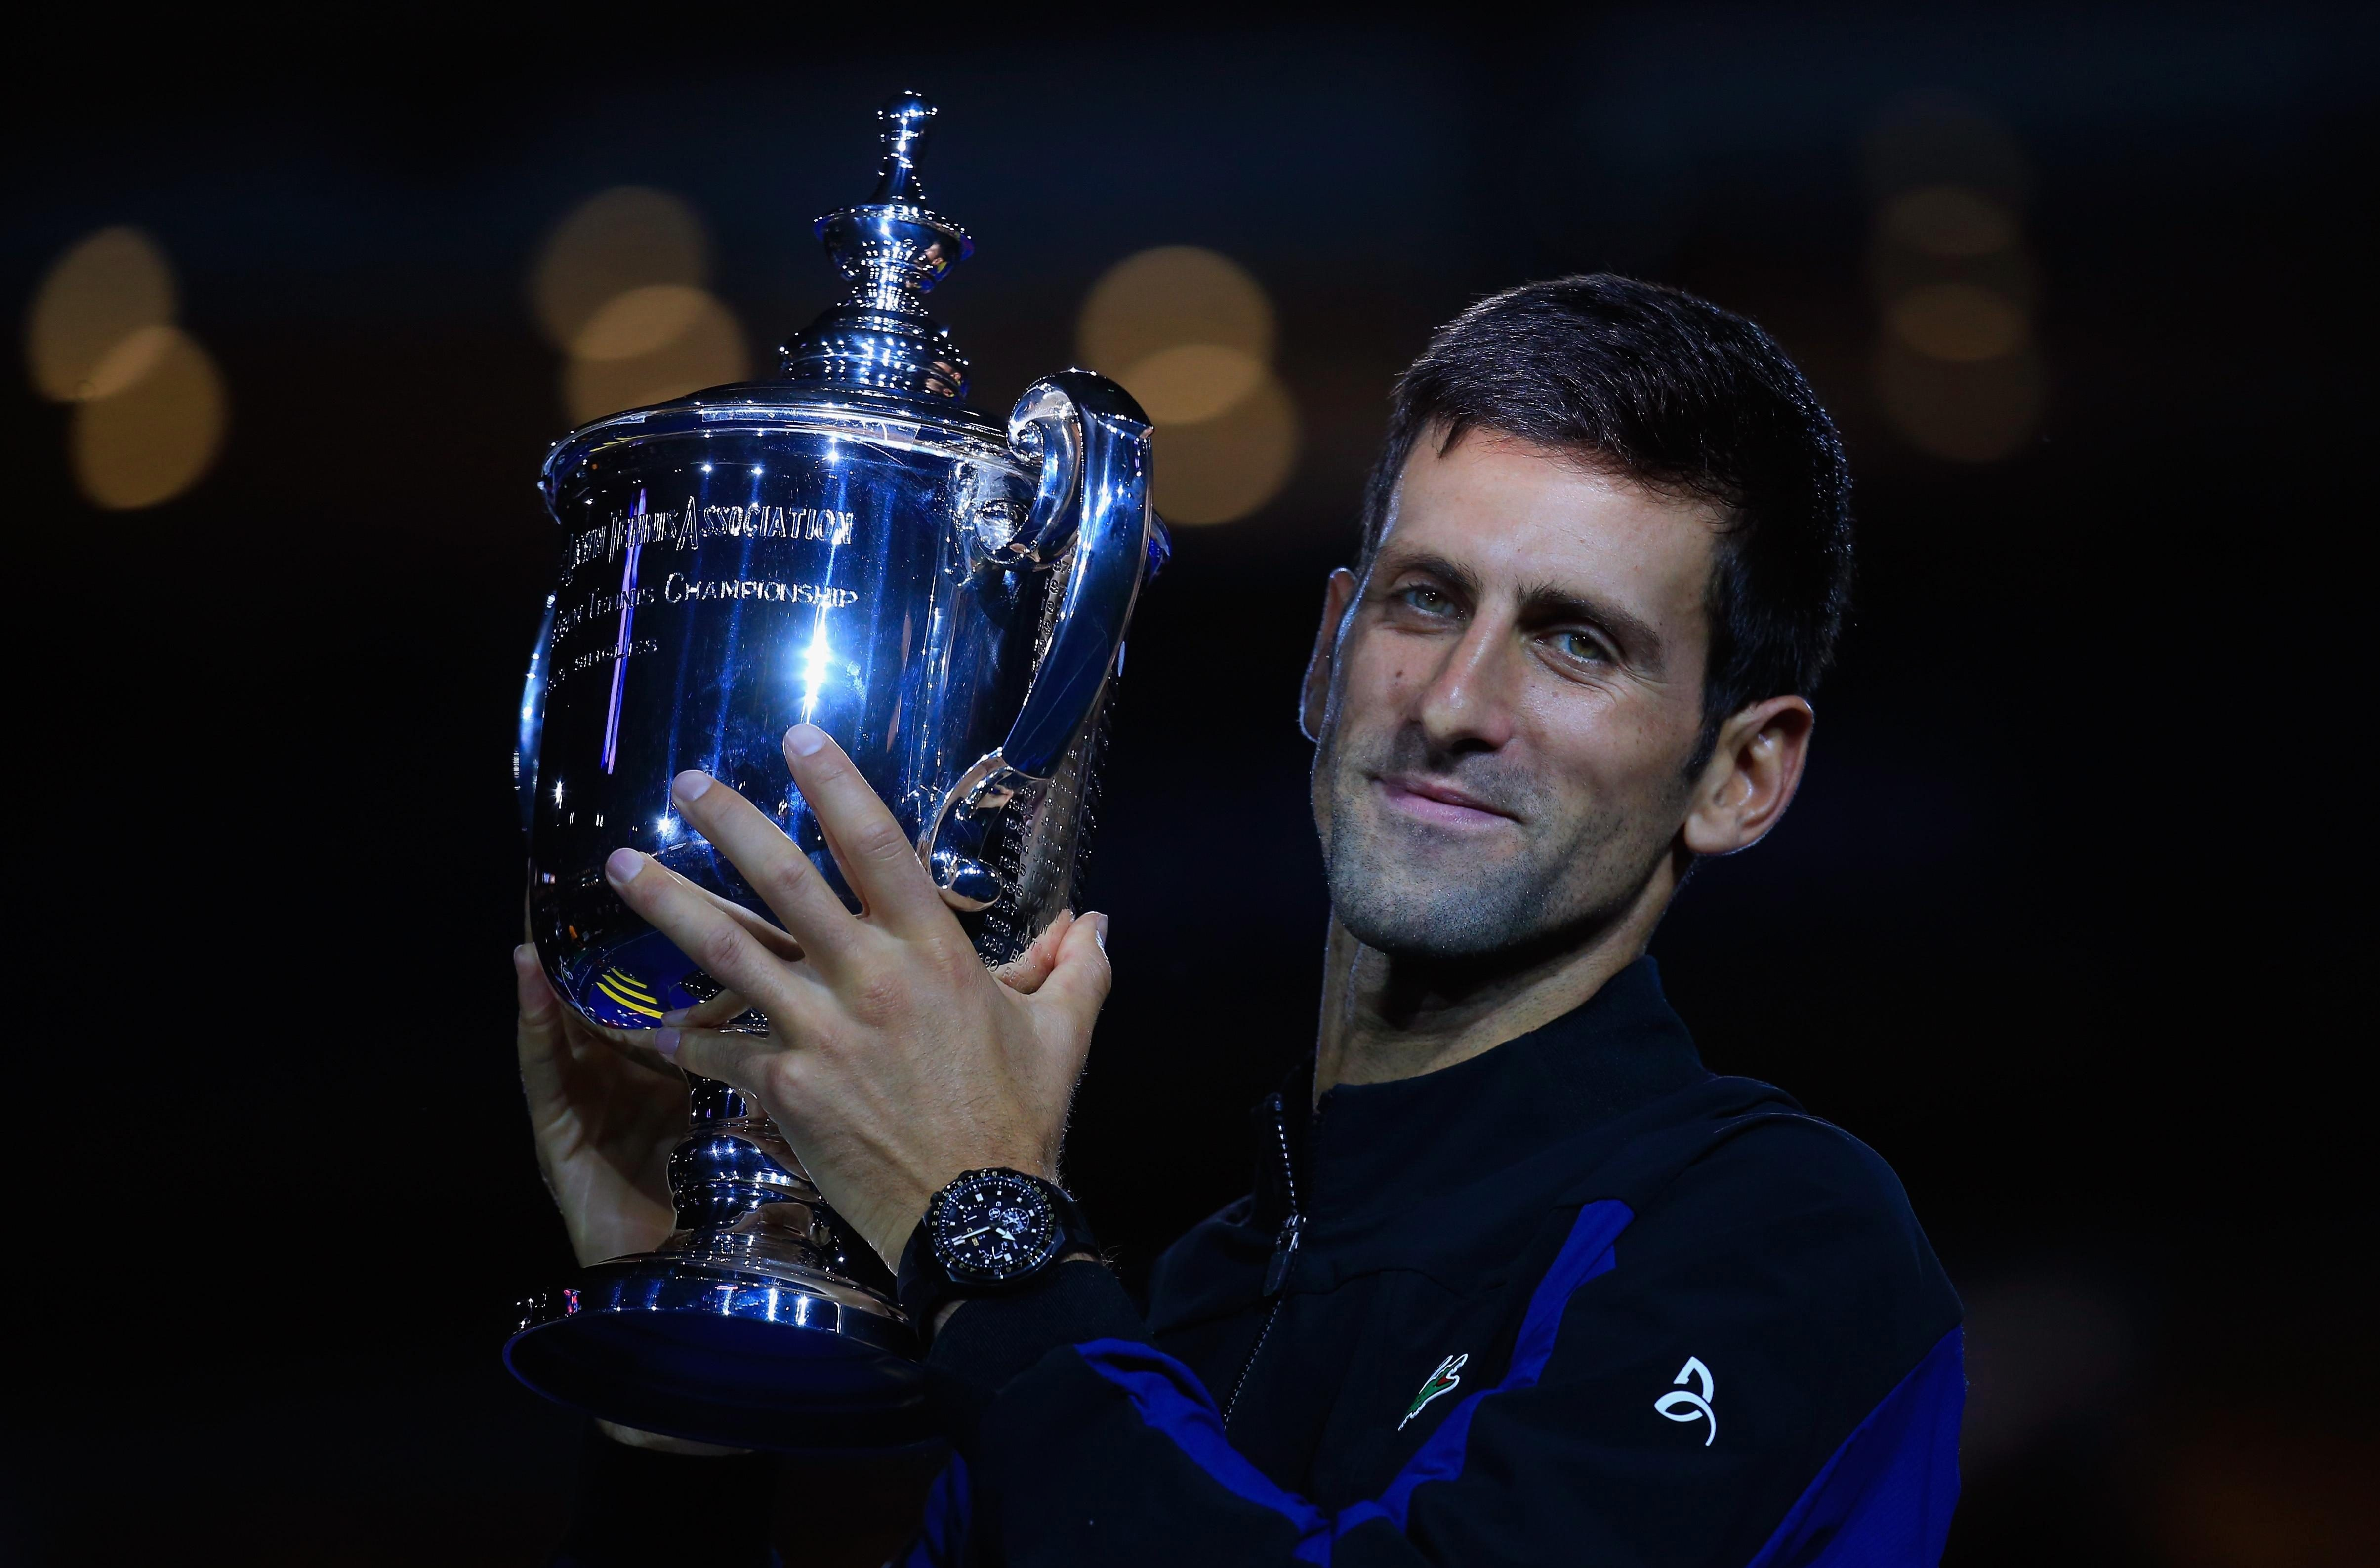 Novak Djokovic claimed his third US Open to go level with Pete Sampras on 14 Grand Slam titles